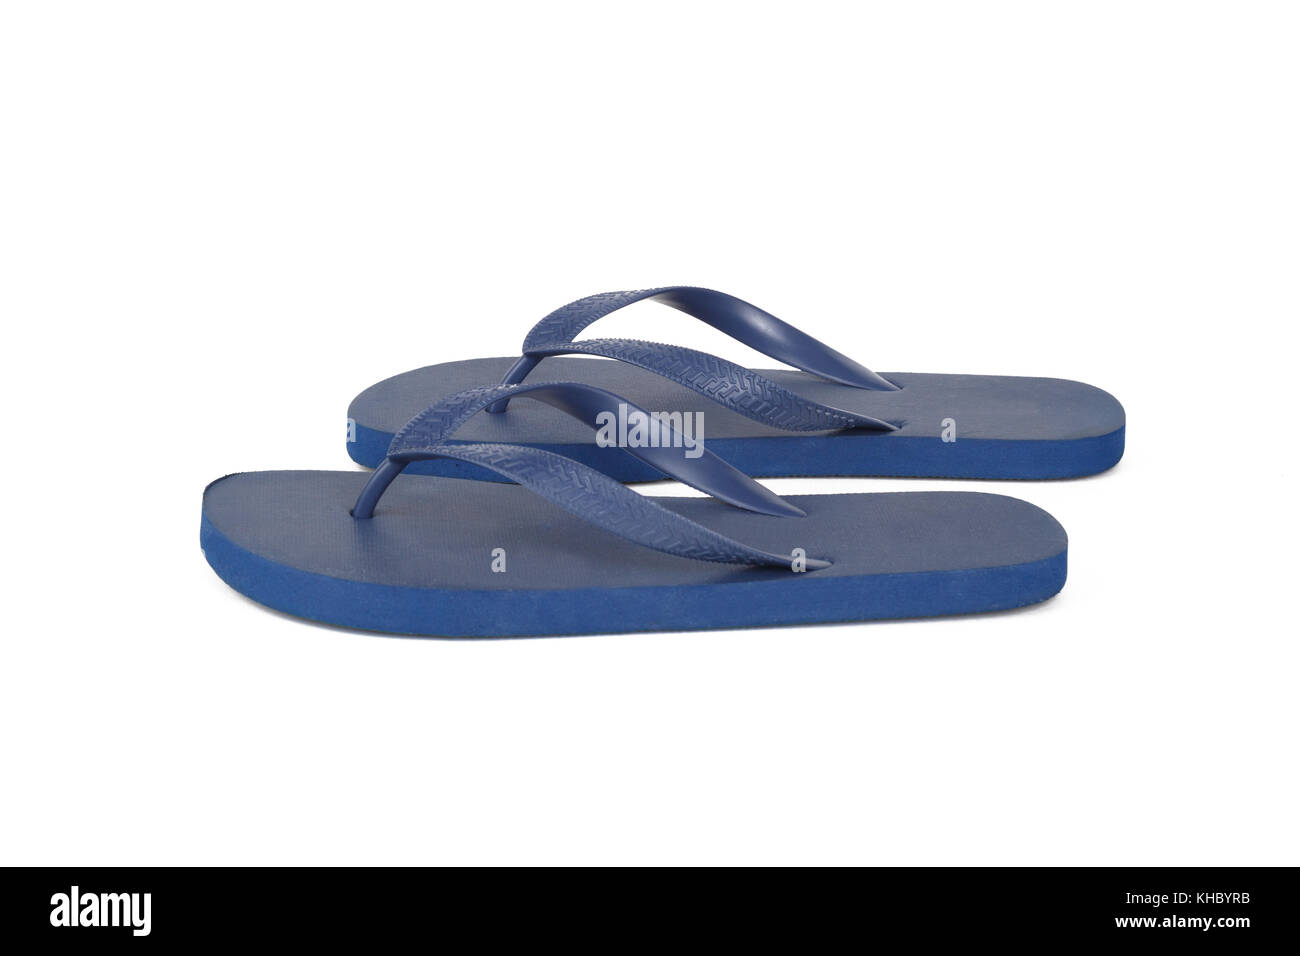 c99b20a8e41 Close up detailed front view of dark blue plastic flip flops slippers  isolated on white background